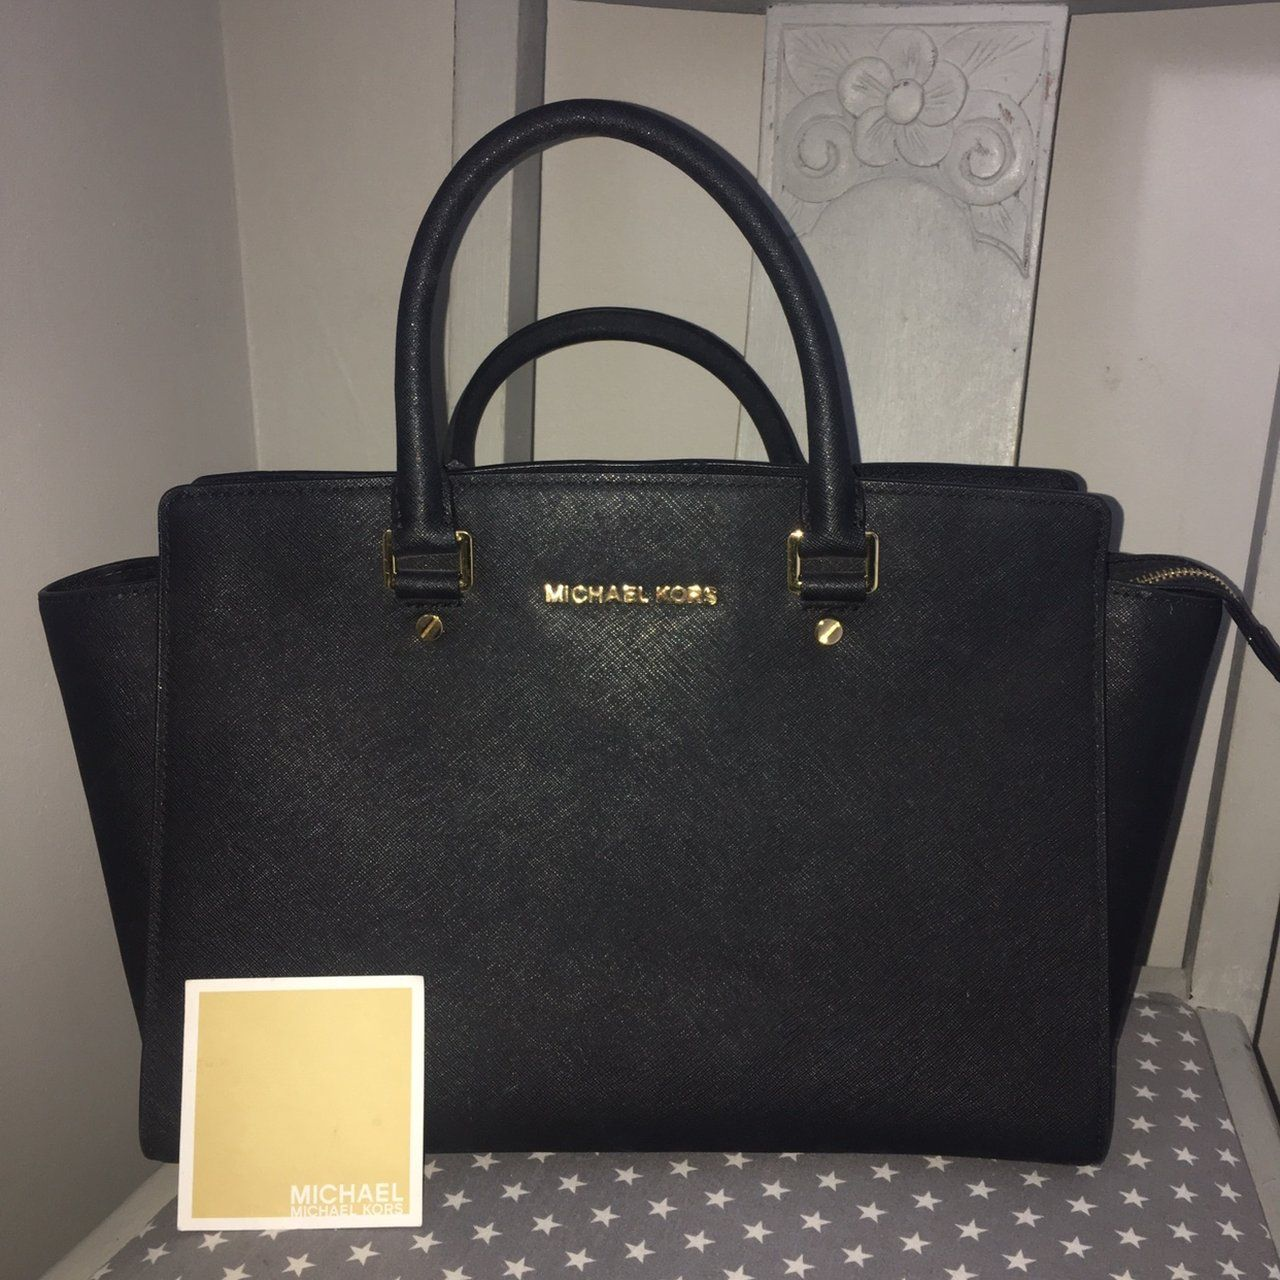 d691fcd7aafc MICHAEL KORS Selma handbag, genuine, saffiano leather. Comes - Depop